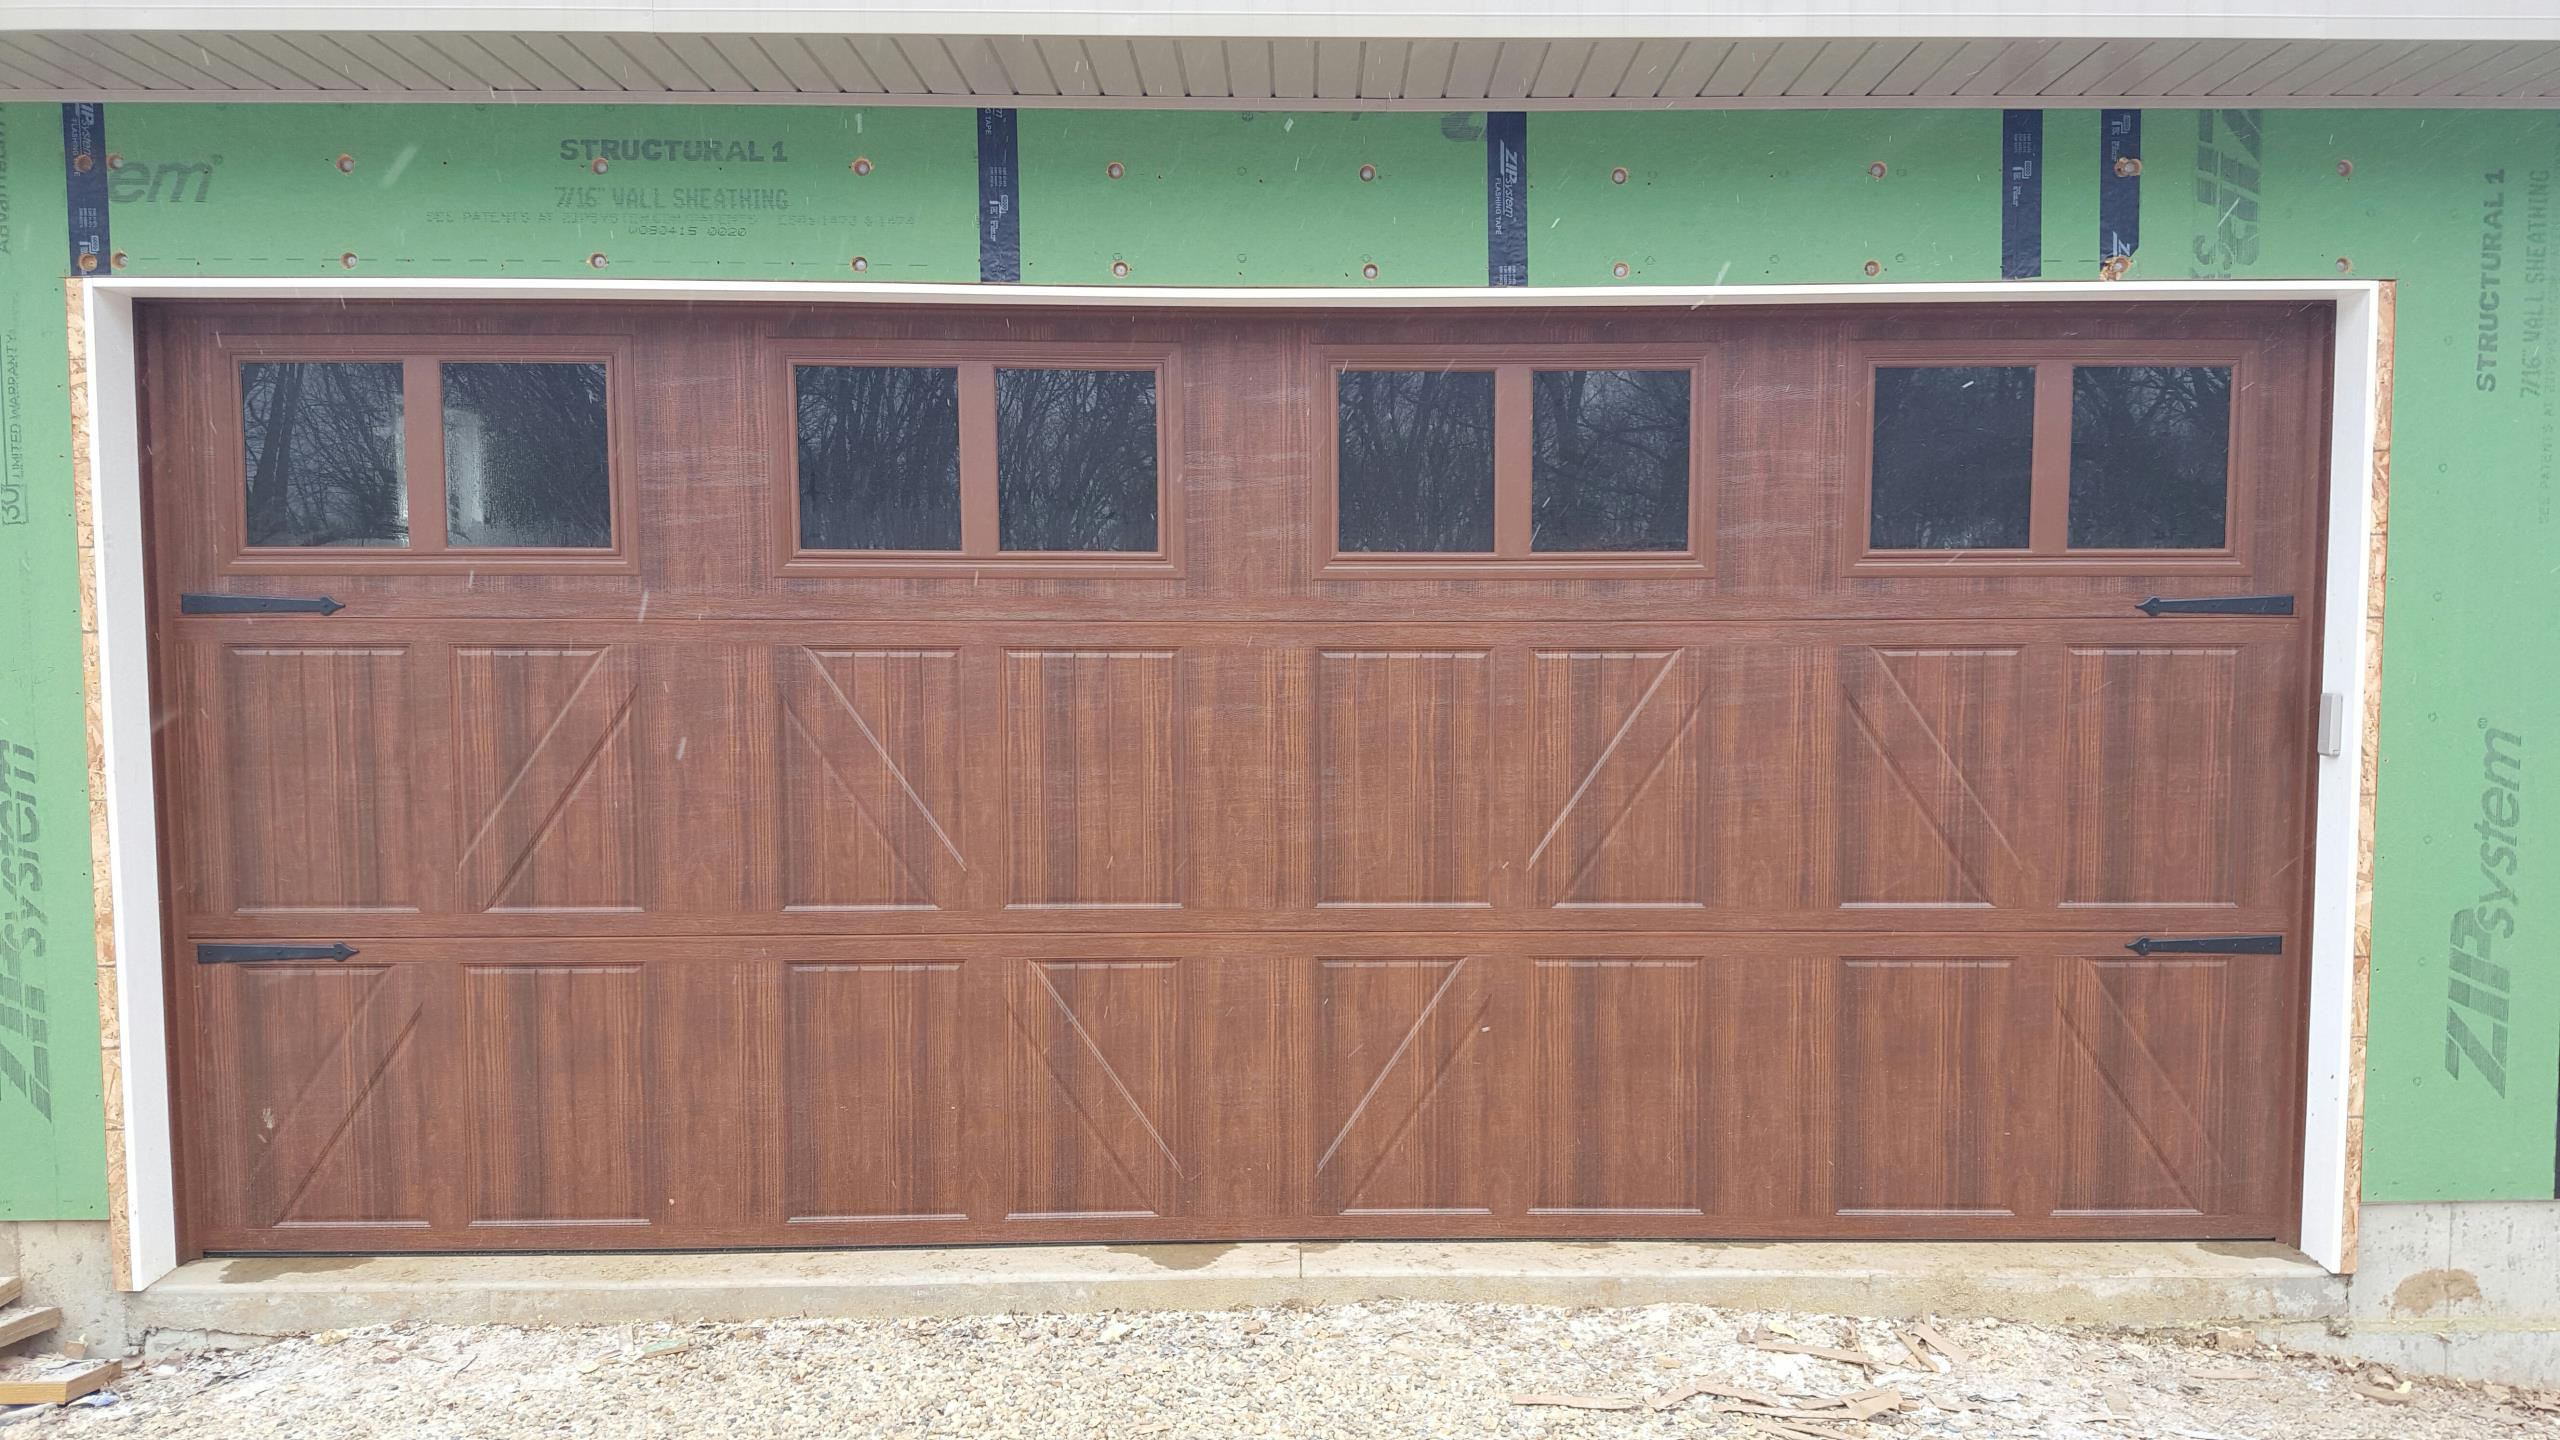 1440 #816B4A New Garage Doors And Garage Door Repair Of Serena Il picture/photo Garage Doors Near Me 37392560